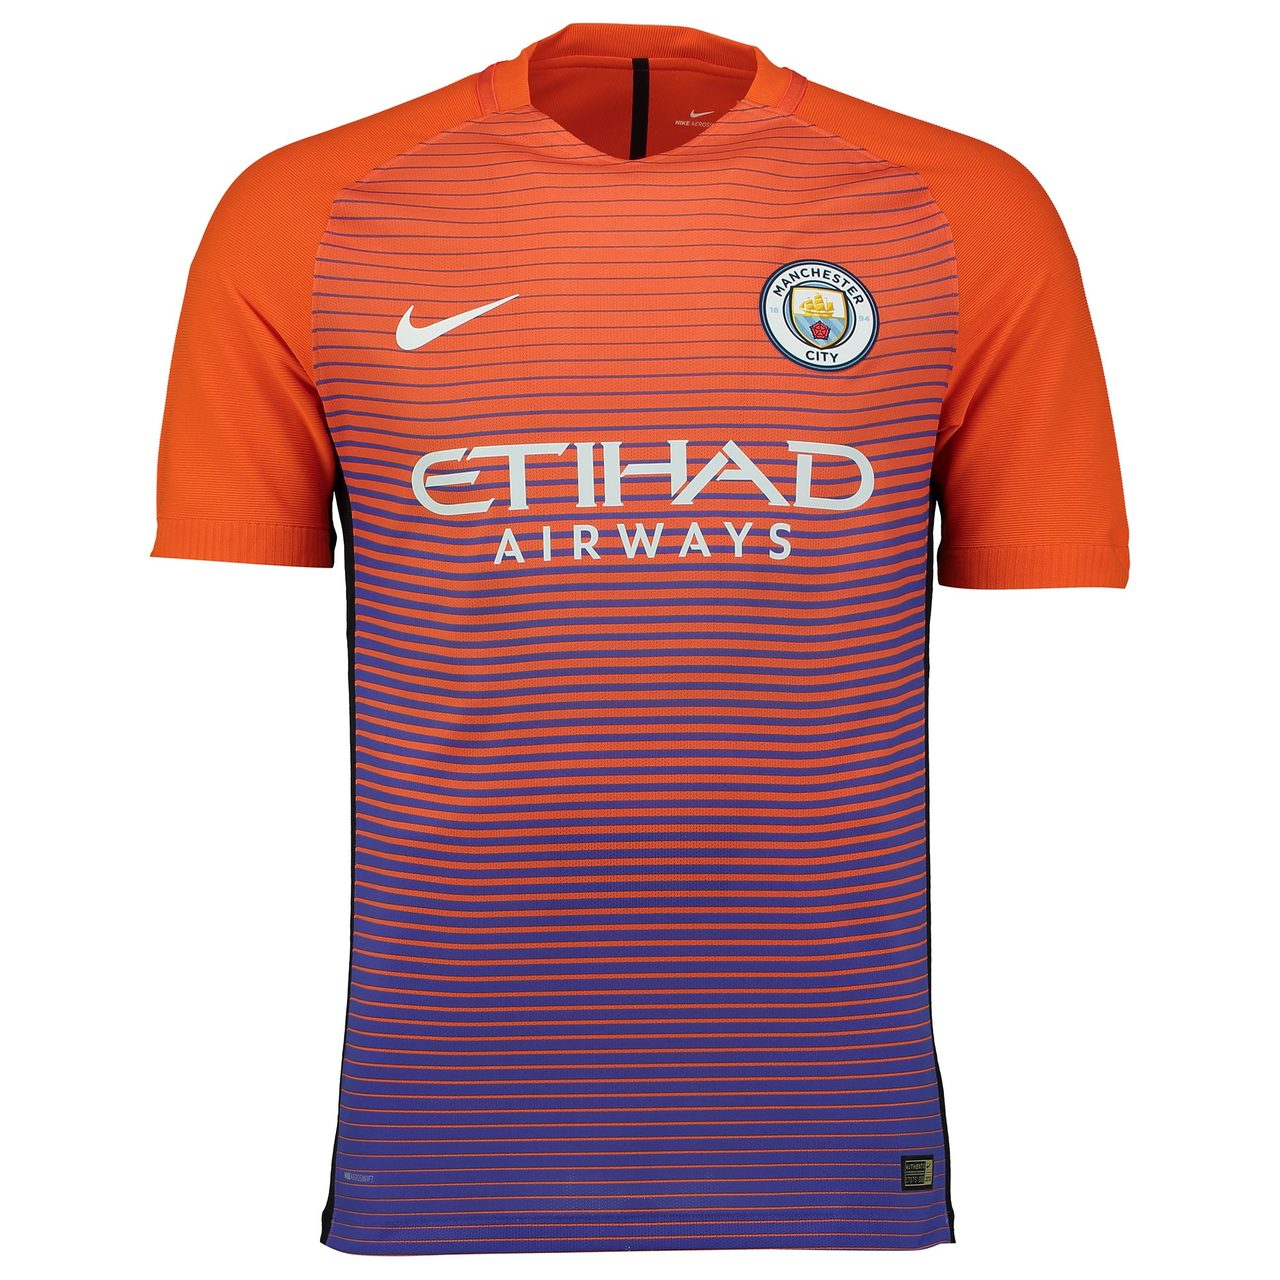 Colour Combination For Hall Manchester City 16 17 Nike Third Kit 16 17 Kits